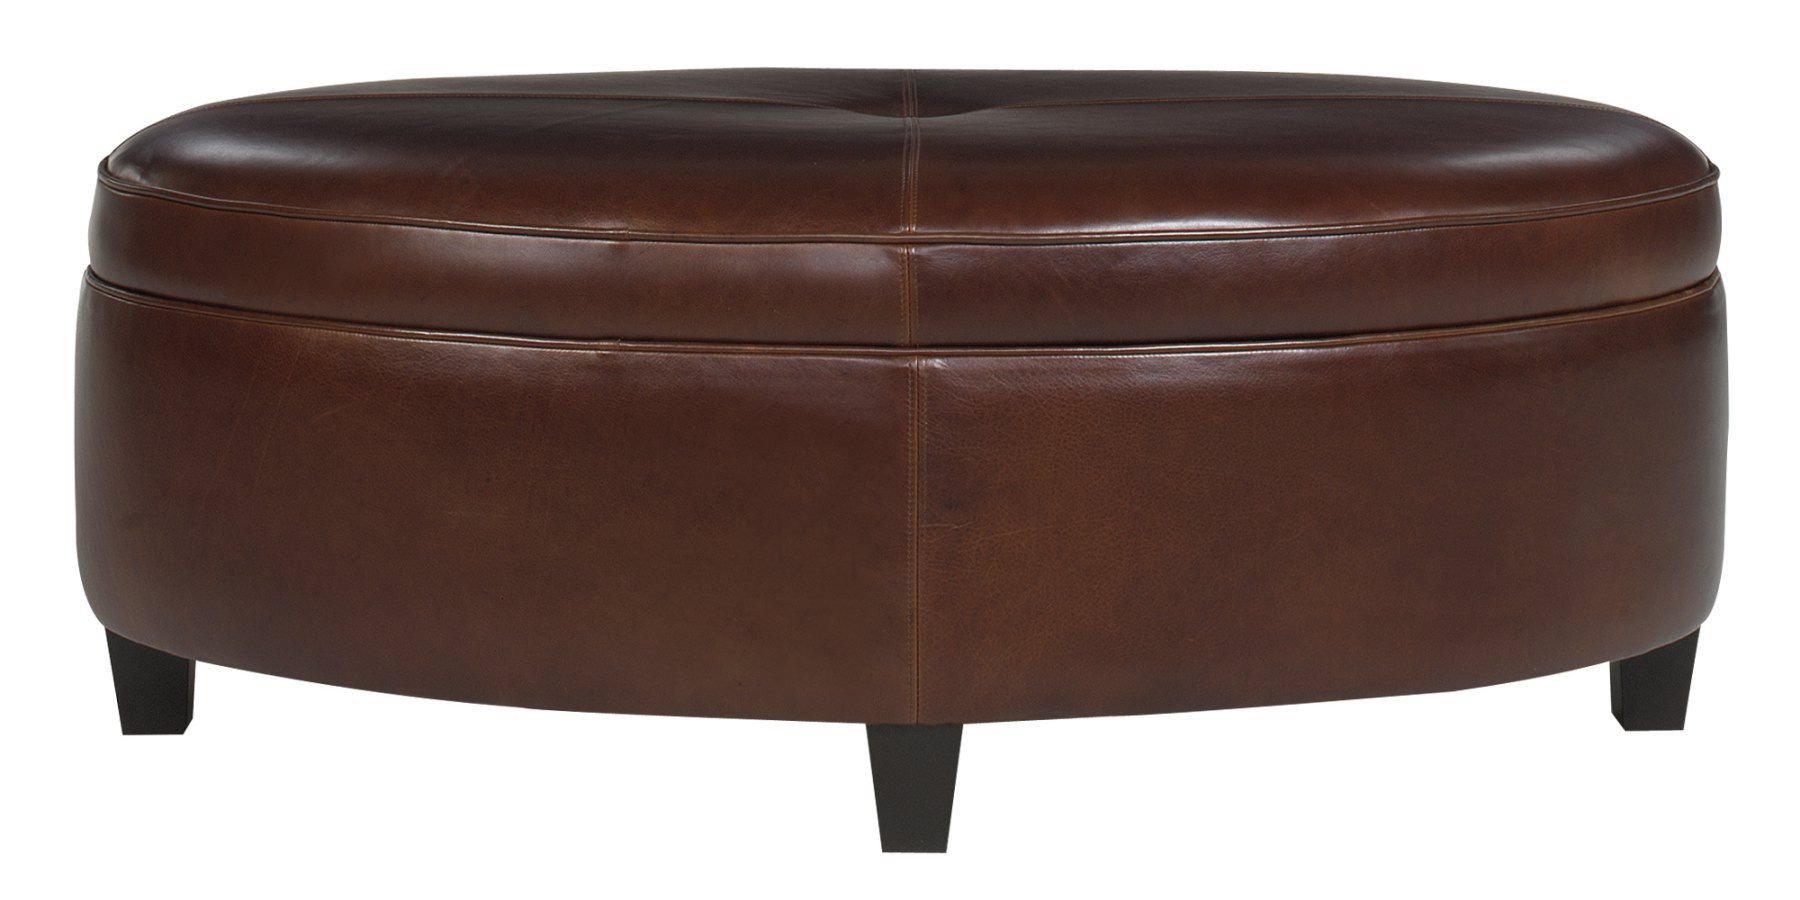 Avery Fabric Or Leather Upholstered Oversized Oval Storage Ottoman